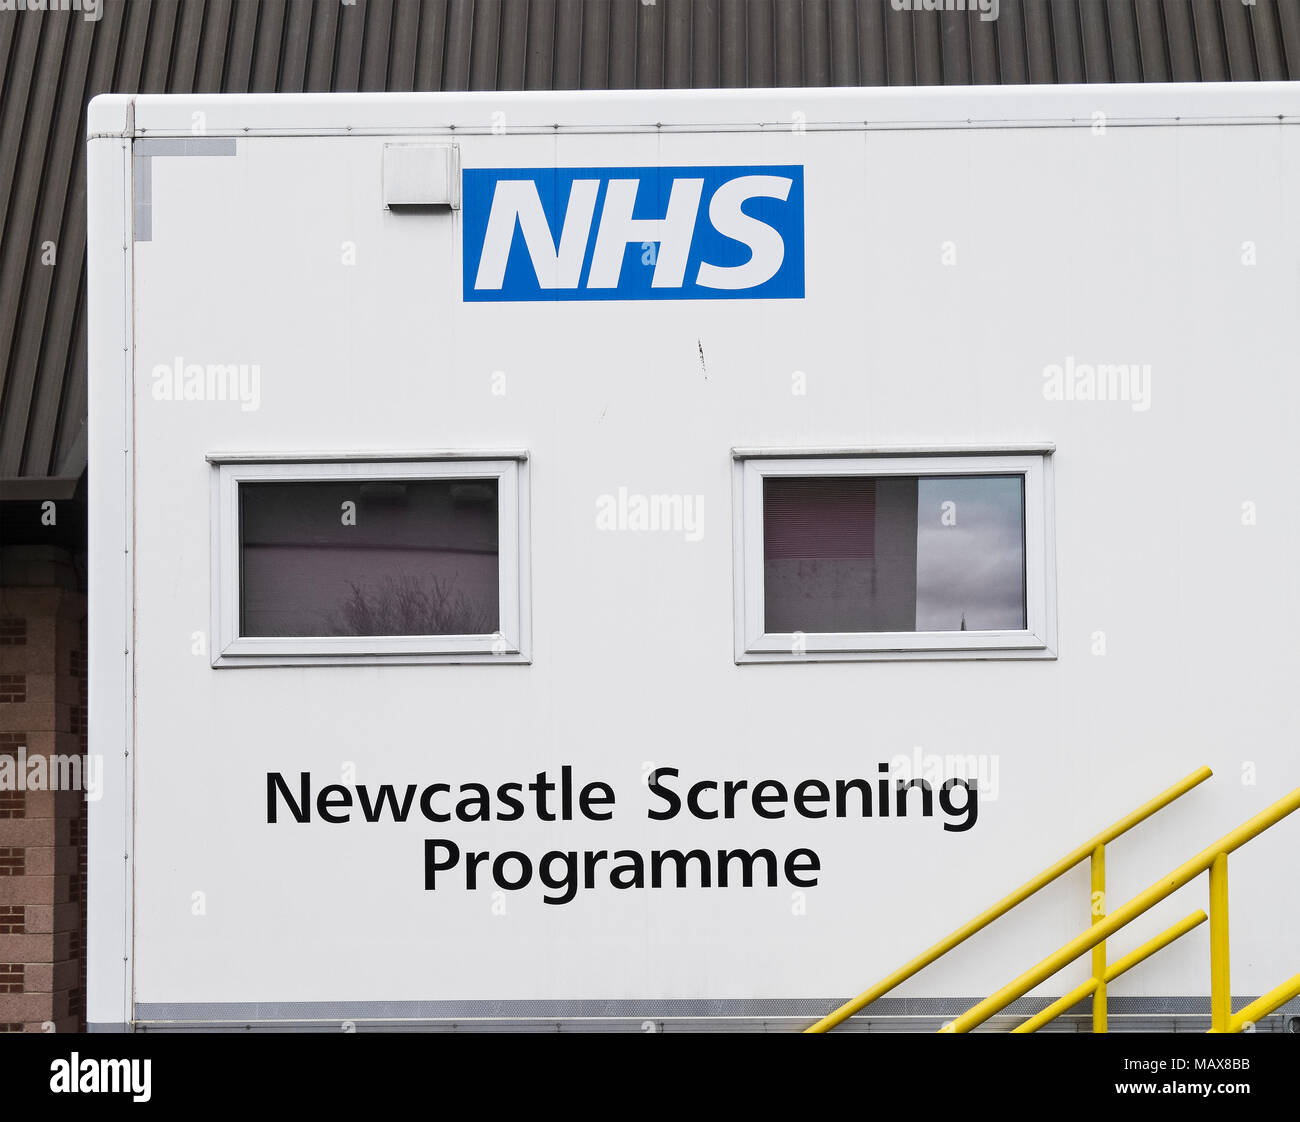 Mobile National Health Service (NHS) screening programme trailer, UK - Stock Image